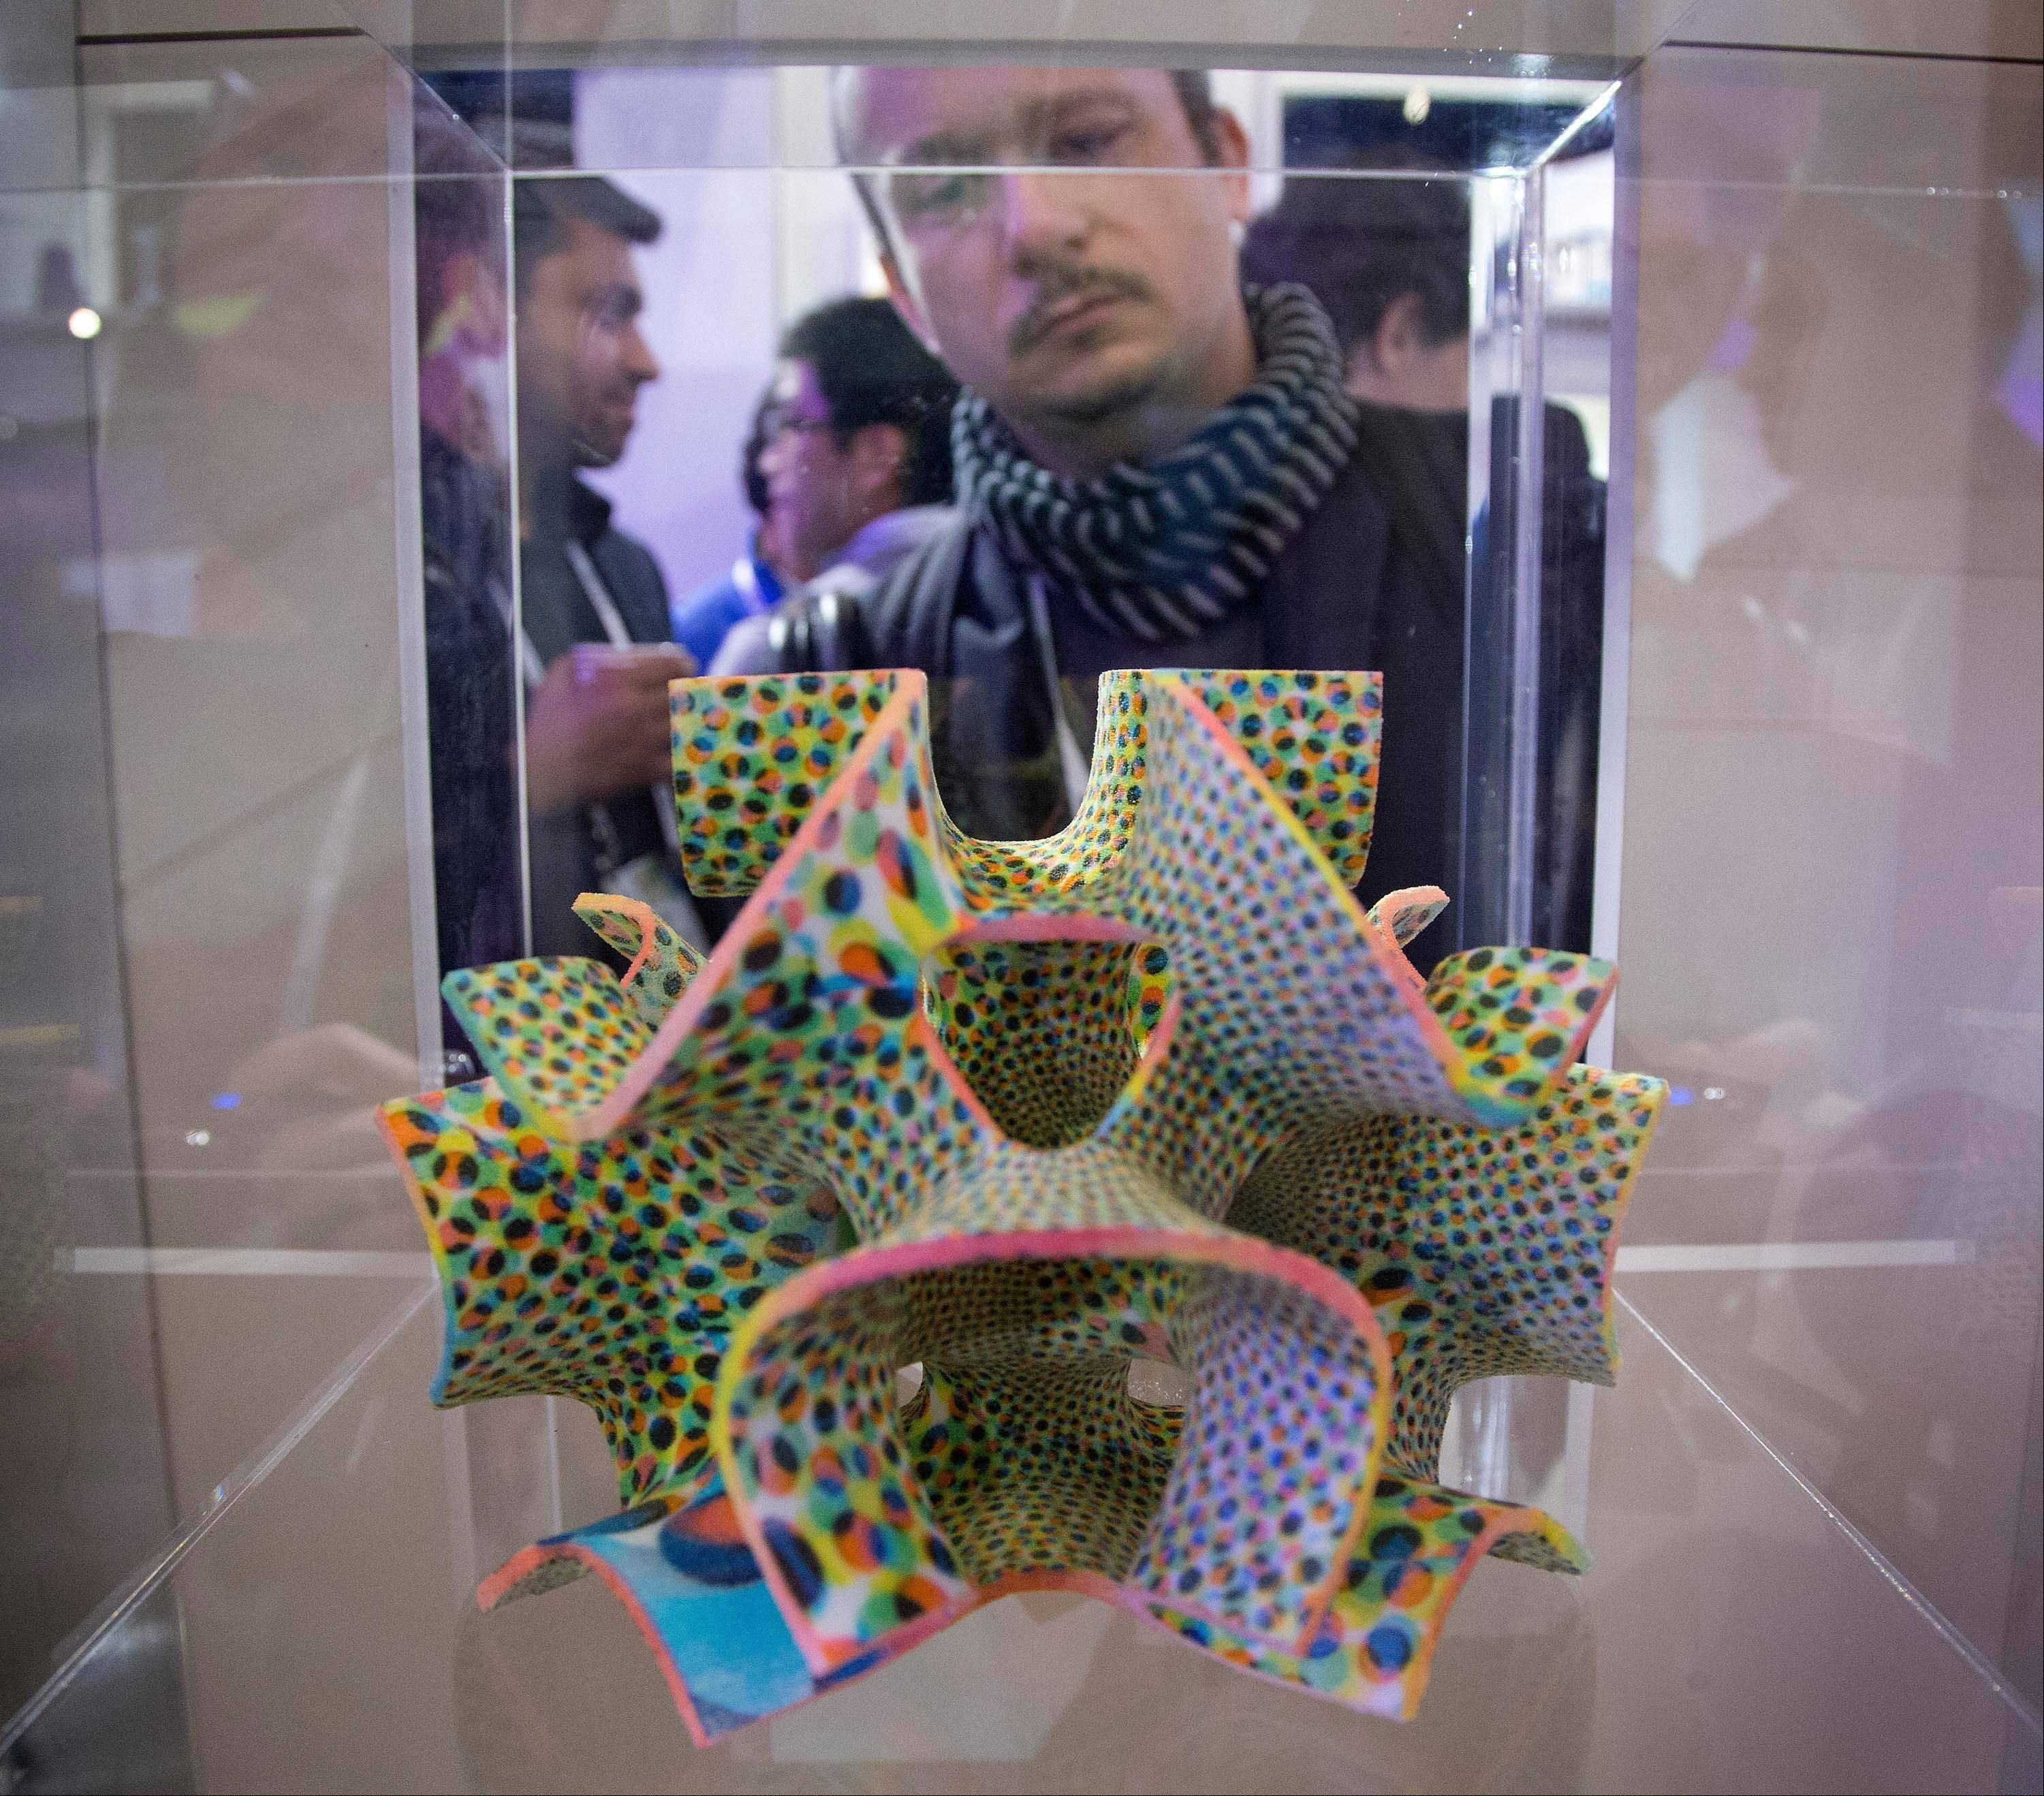 A trade show attendee examines a centerpiece confection made with a ChefJet Pro 3-D food printer on display at the International Consumer Electronics Show.